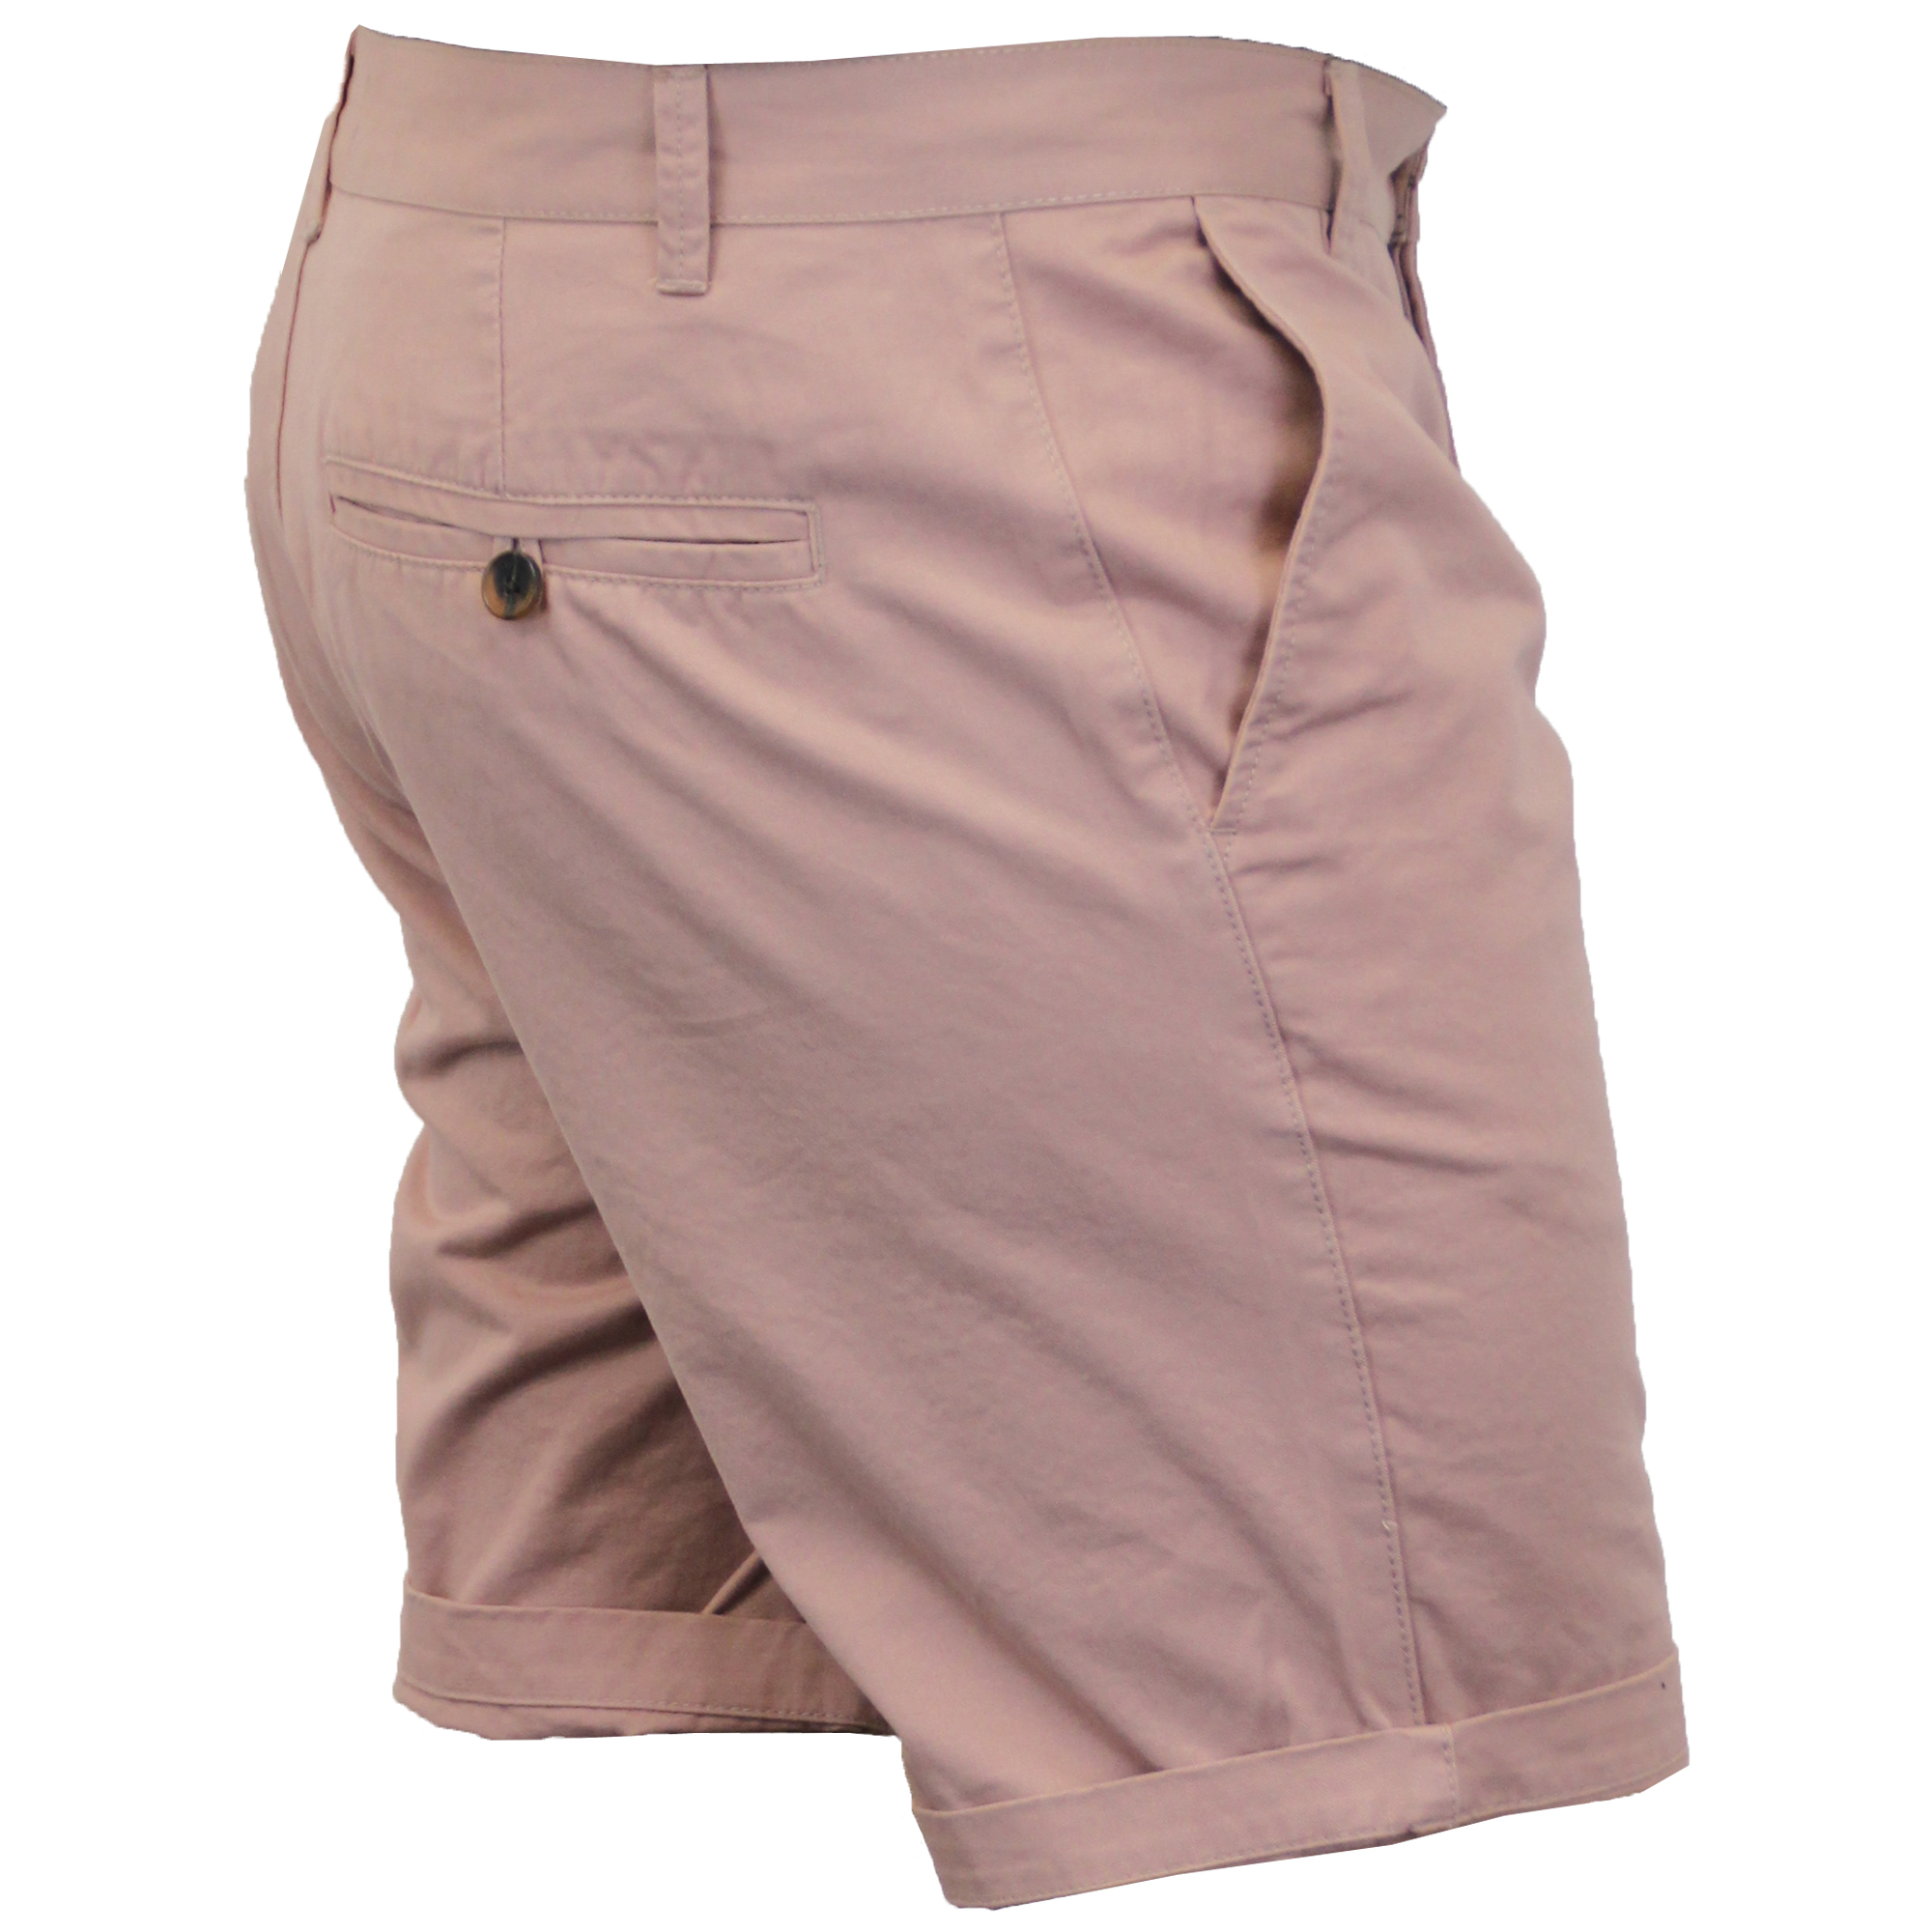 Mens-Chino-Shorts-Threadbare-Pants-Westace-Stallion-Knee-Length-Roll-Up-Summer thumbnail 33